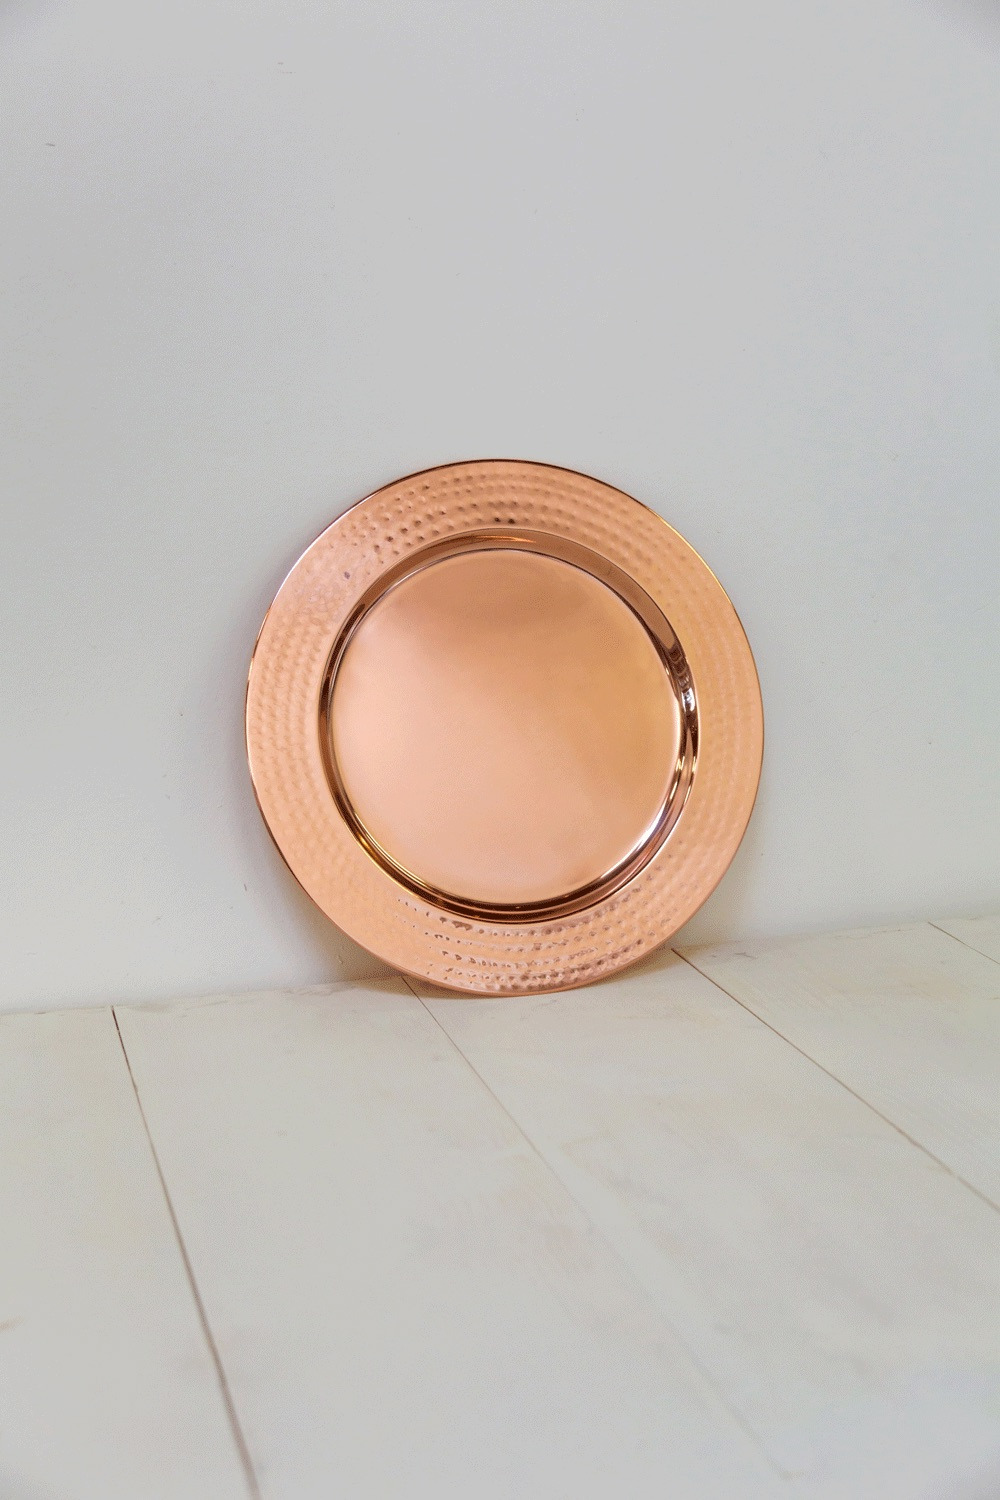 Rose Gold Charger $7